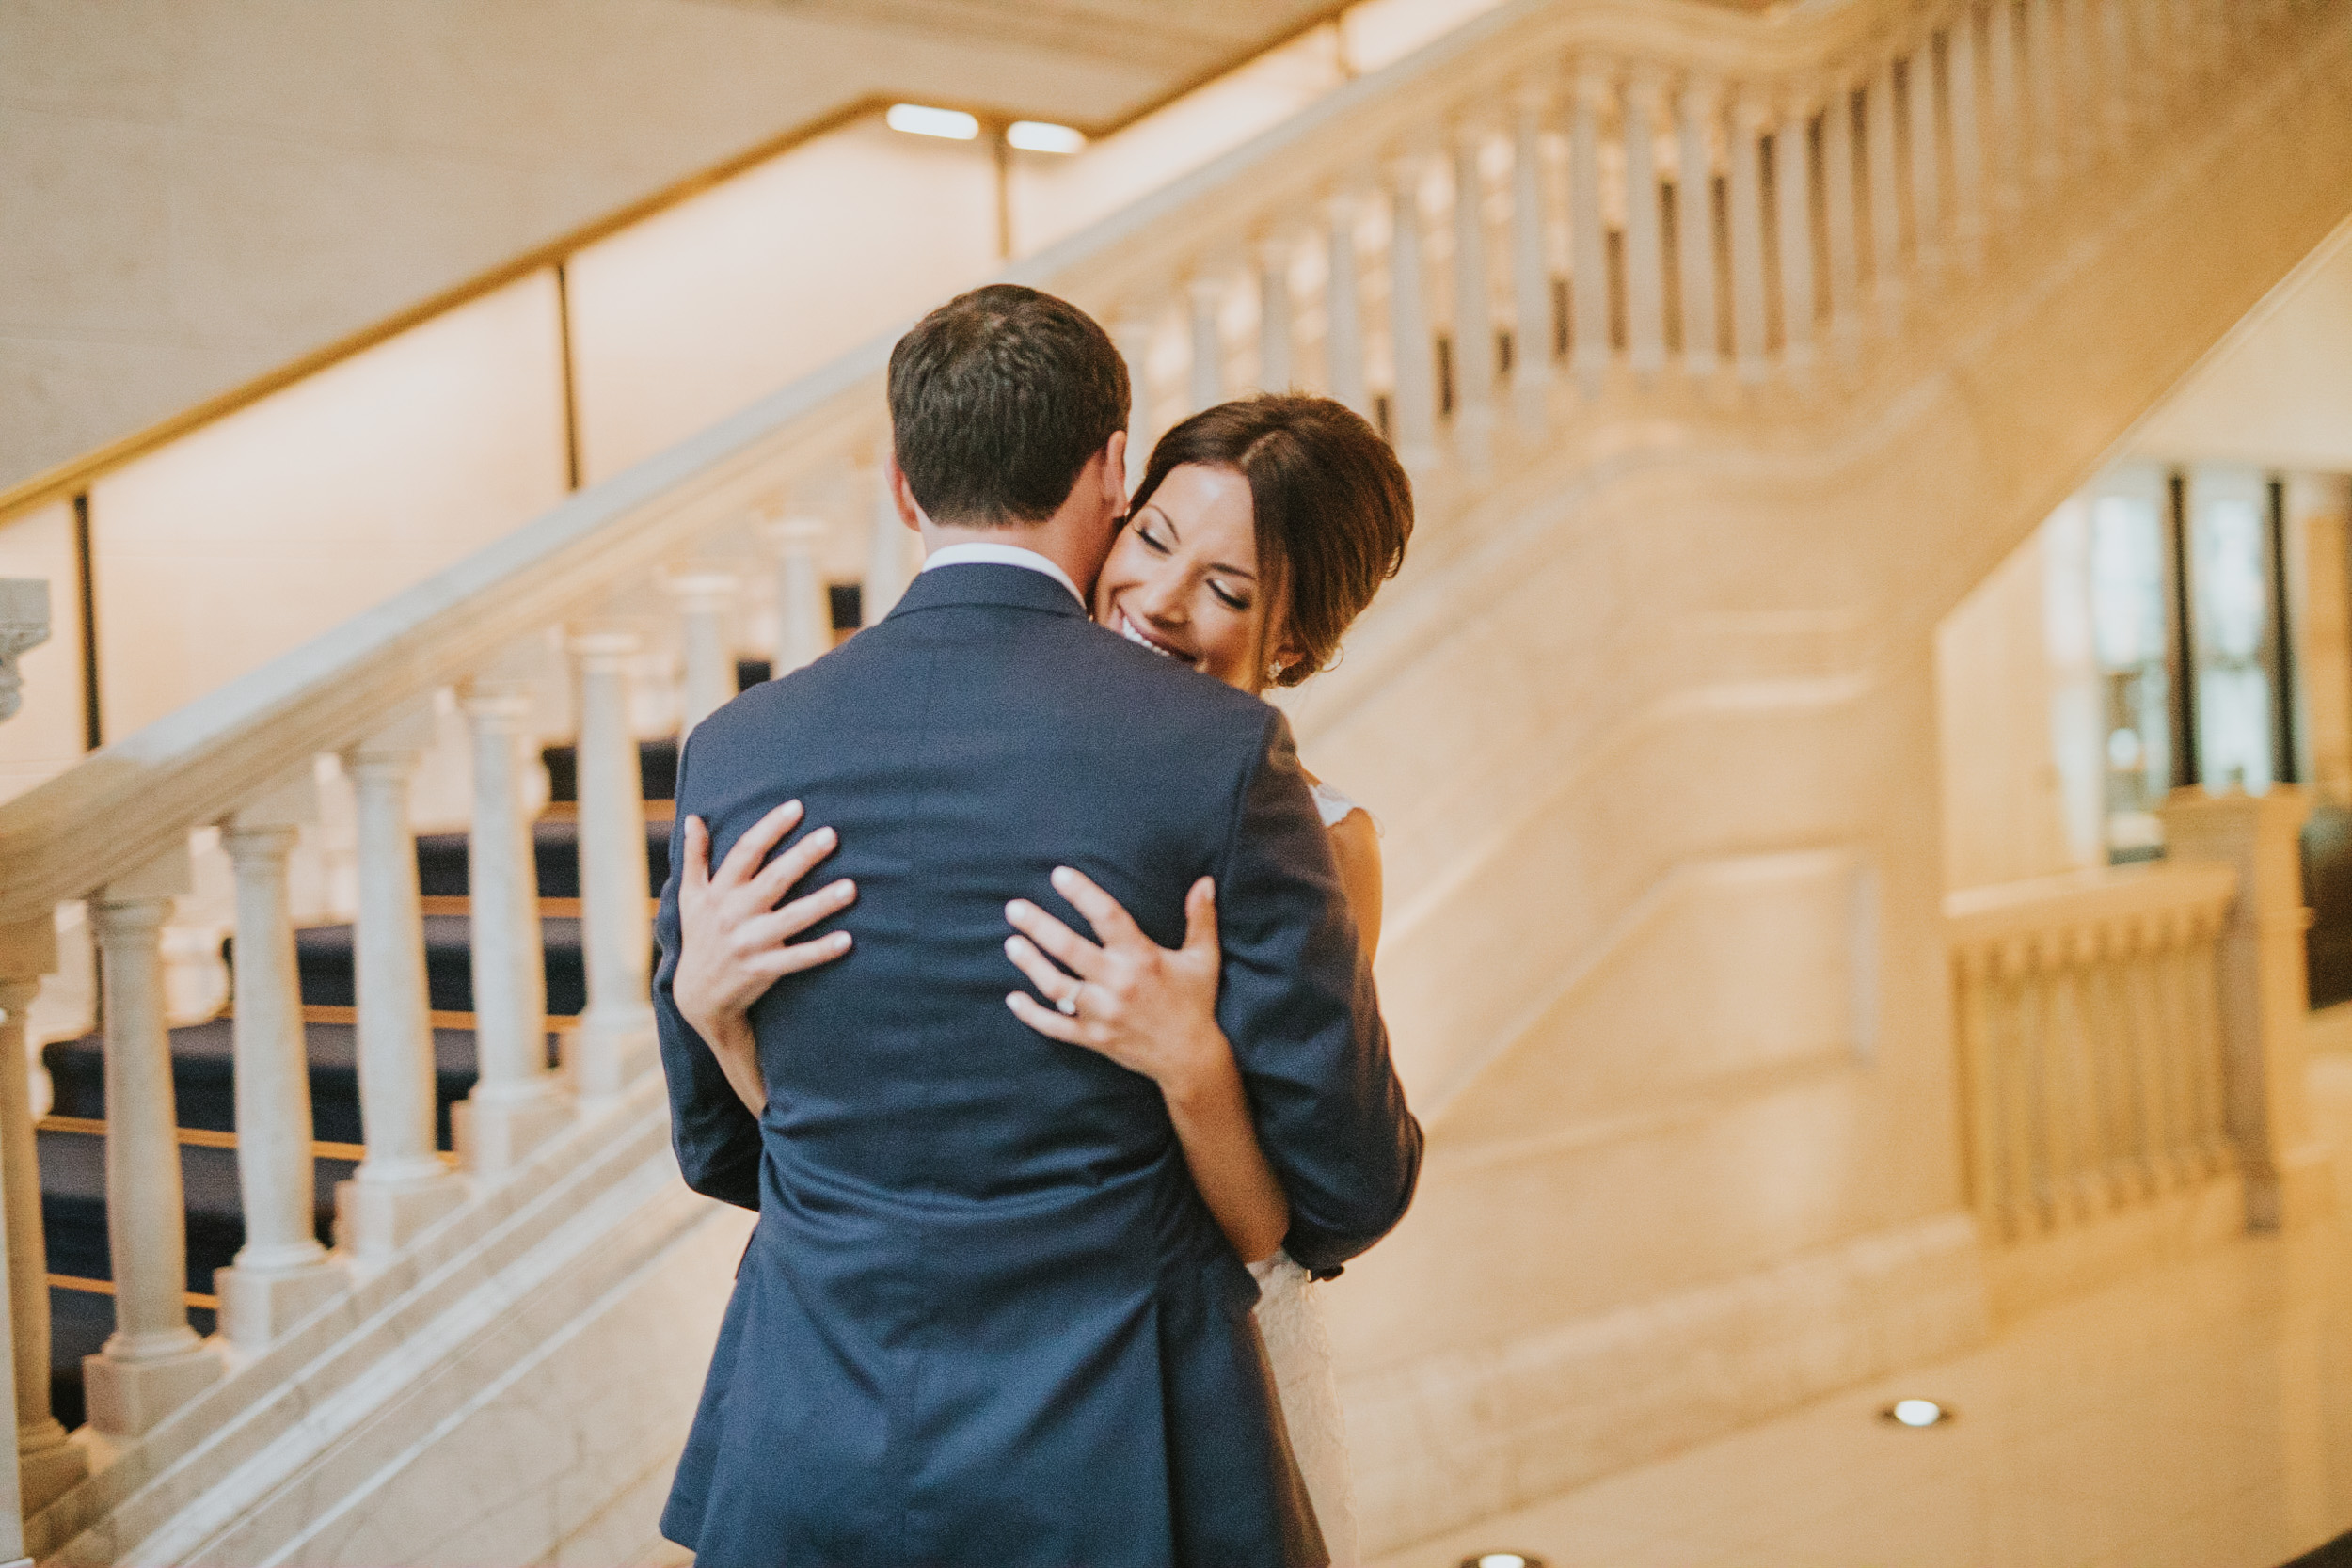 HaroldWashingtonLibraryWedding_Polly C Photography 1704140808.jpg